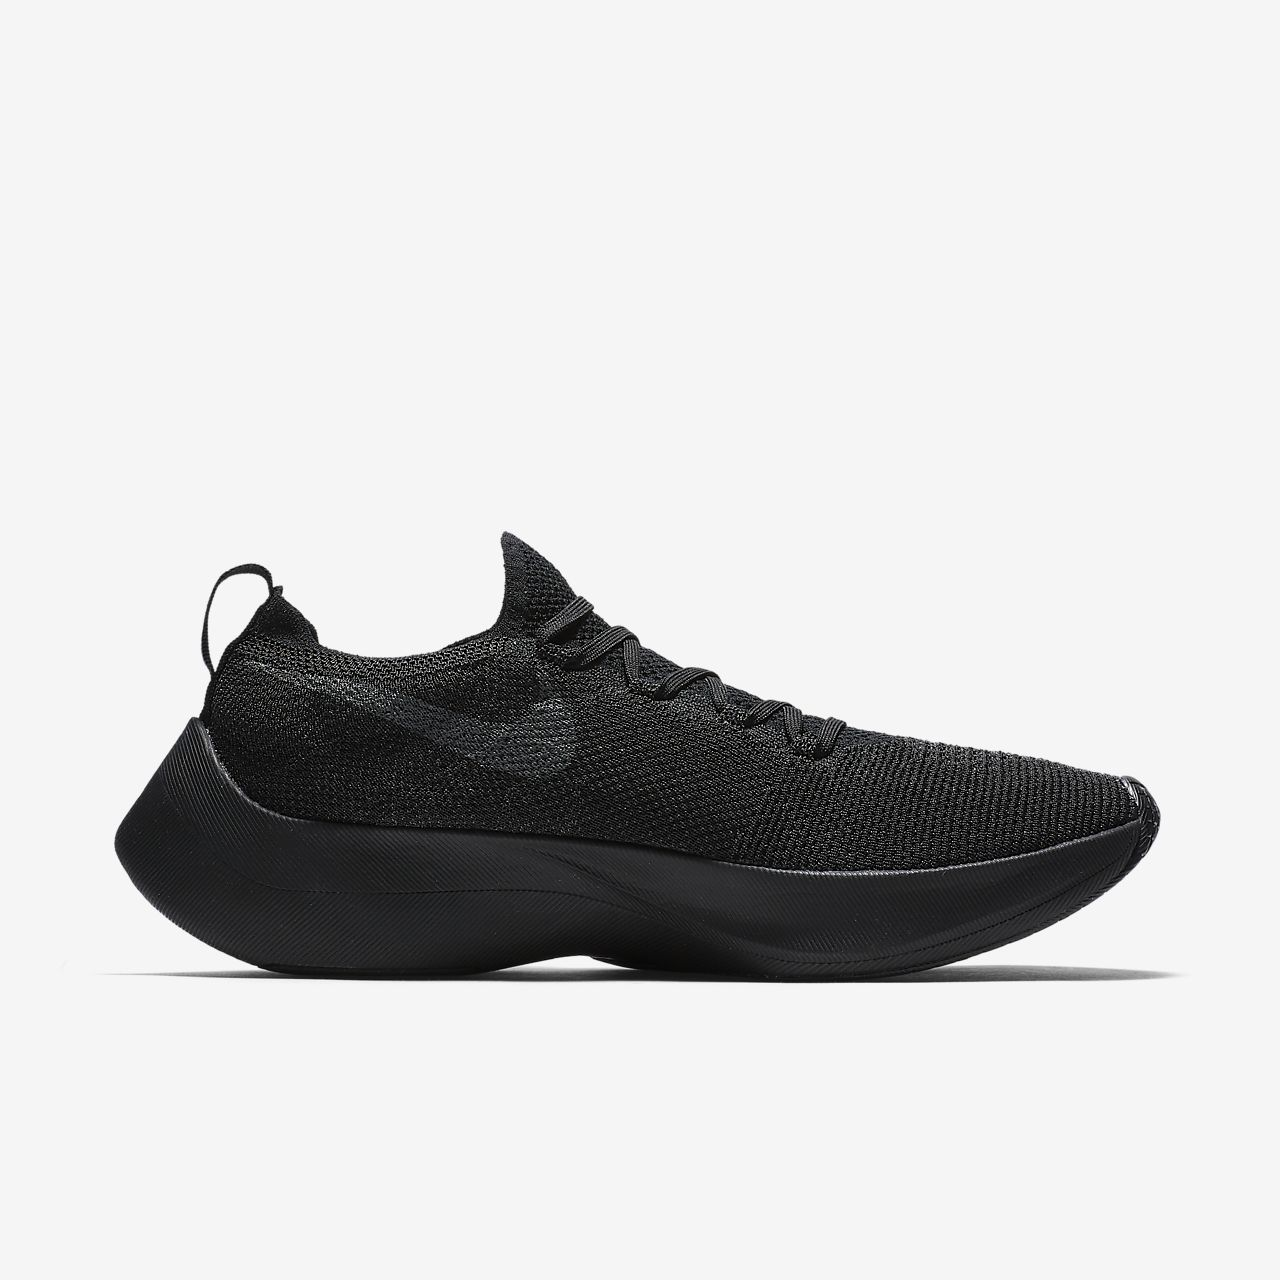 ... Nike React Vapor Street Flyknit Men's Shoe